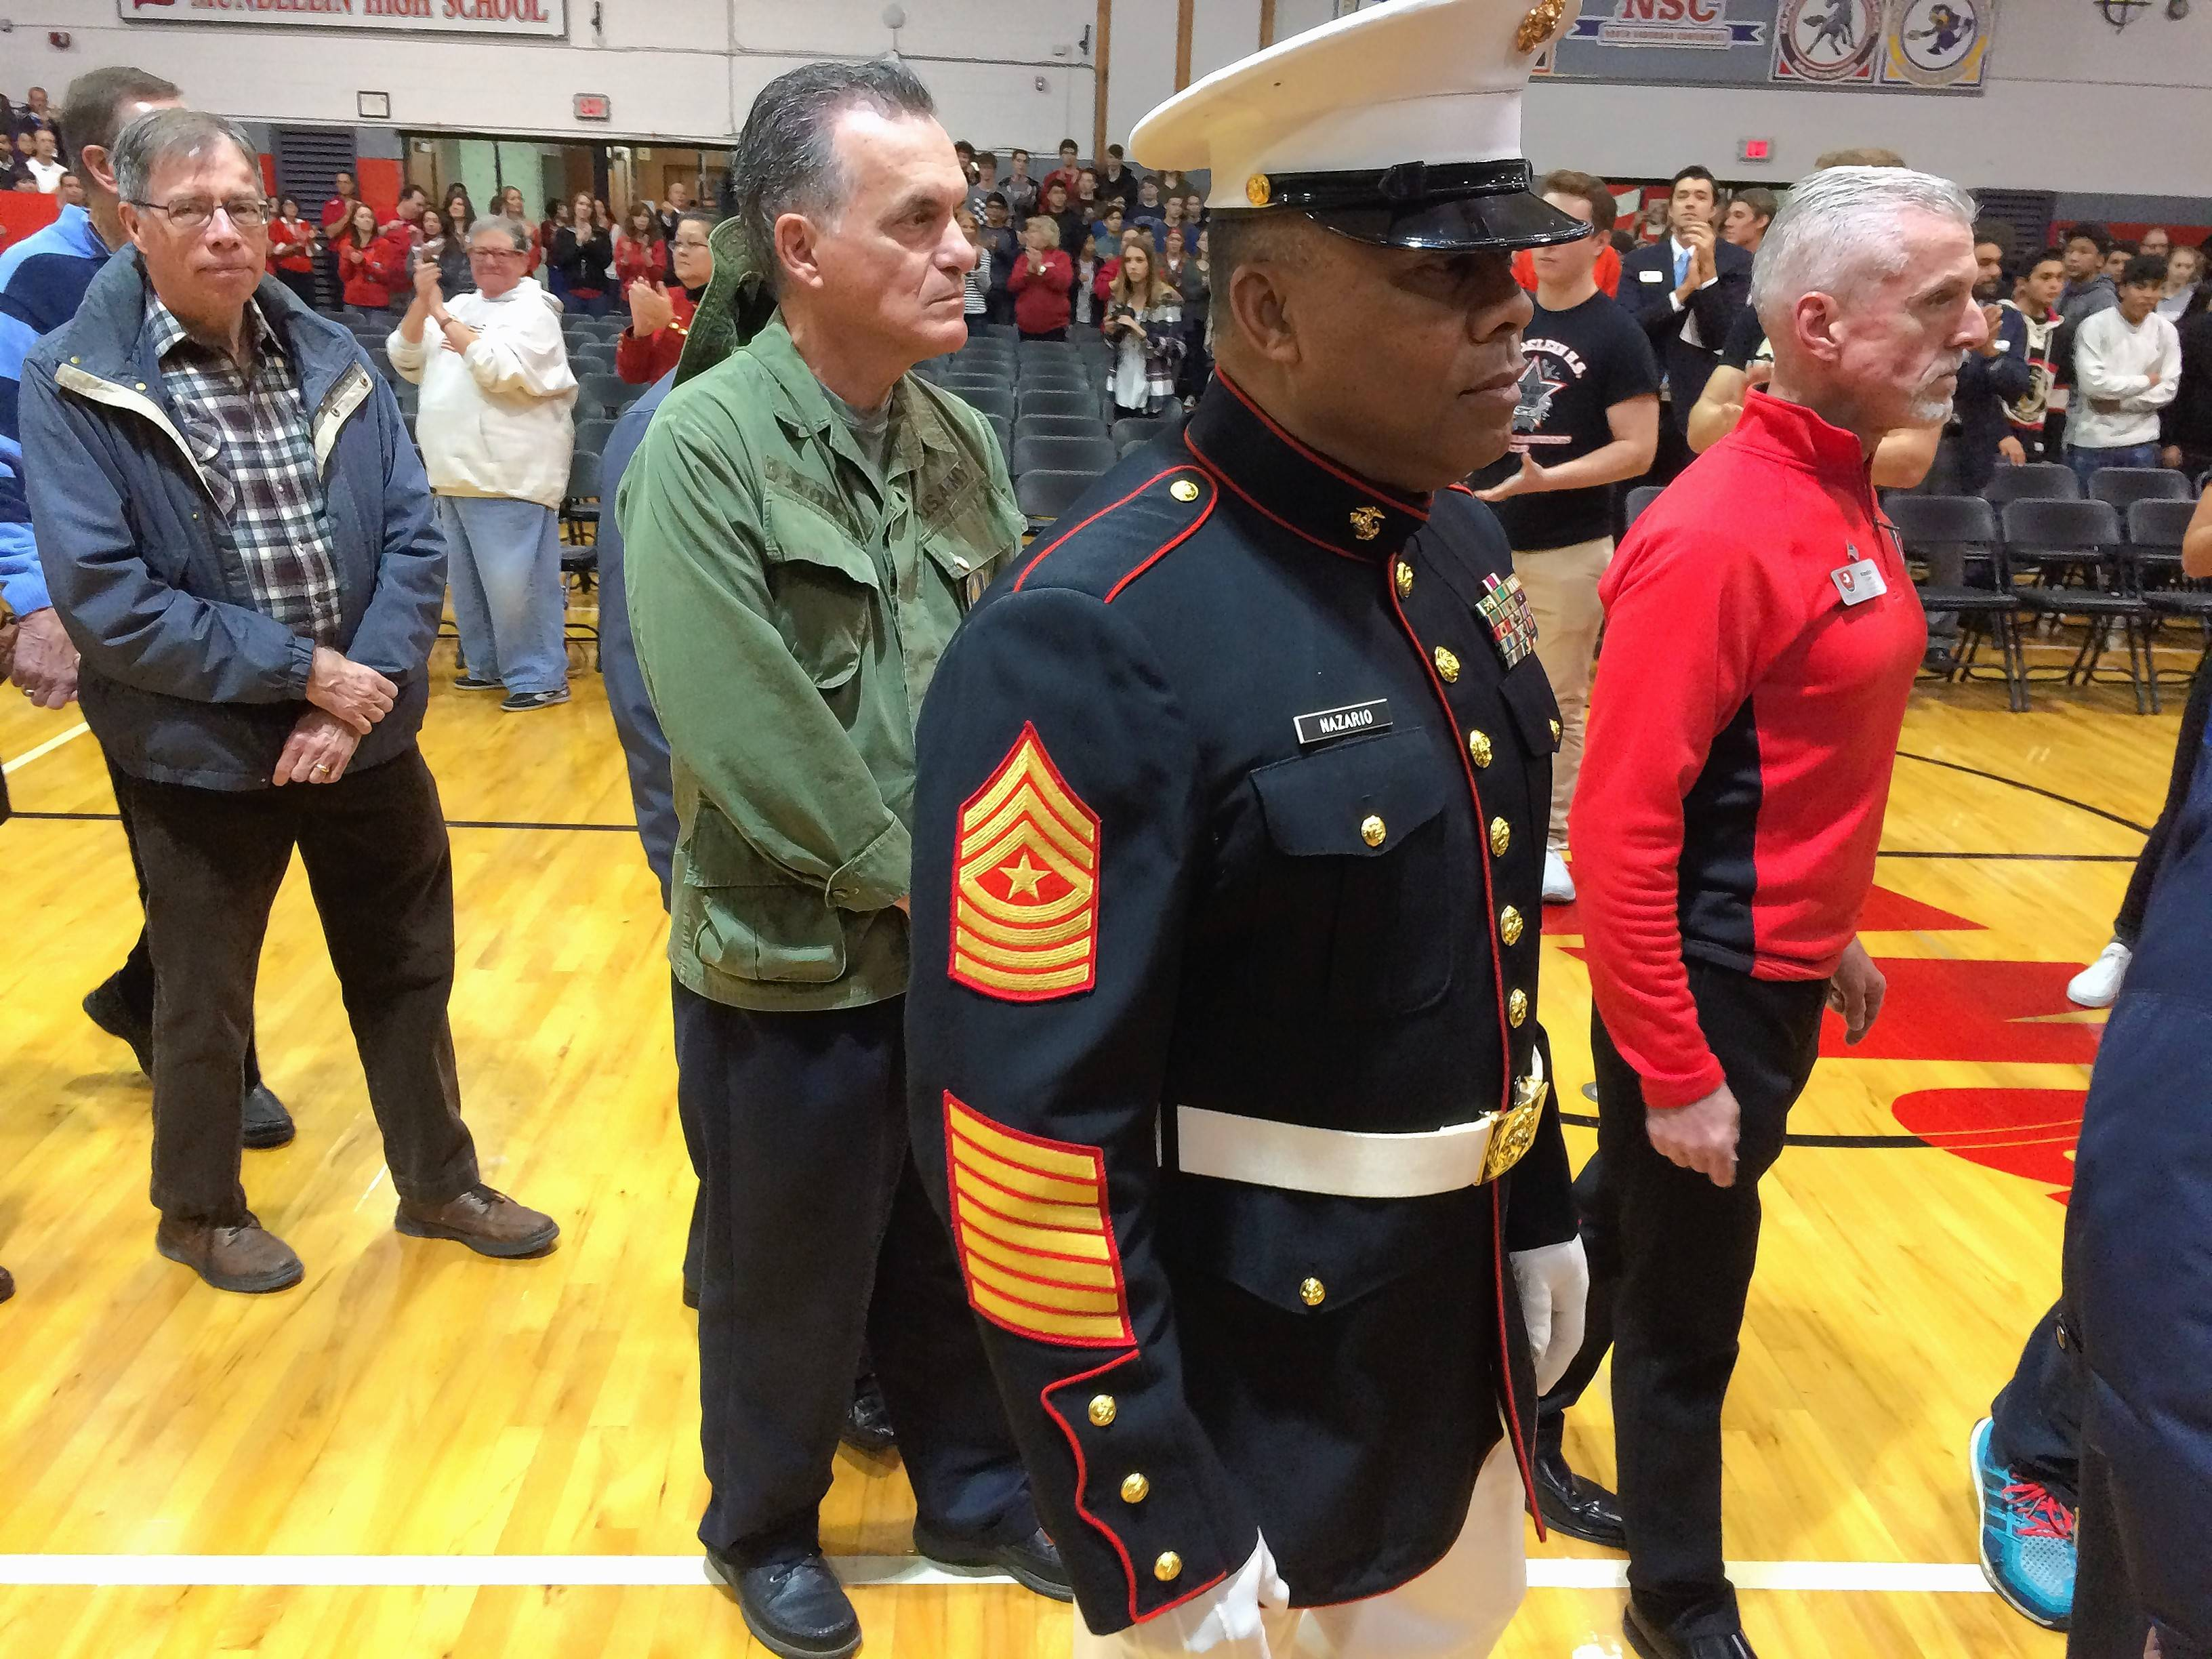 Retired U.S. Marine Sgt. Maj. Jose Nazario, in uniform, enters the Mundelein High School gymnasium with other military veterans for a Friday ceremony honoring veterans.